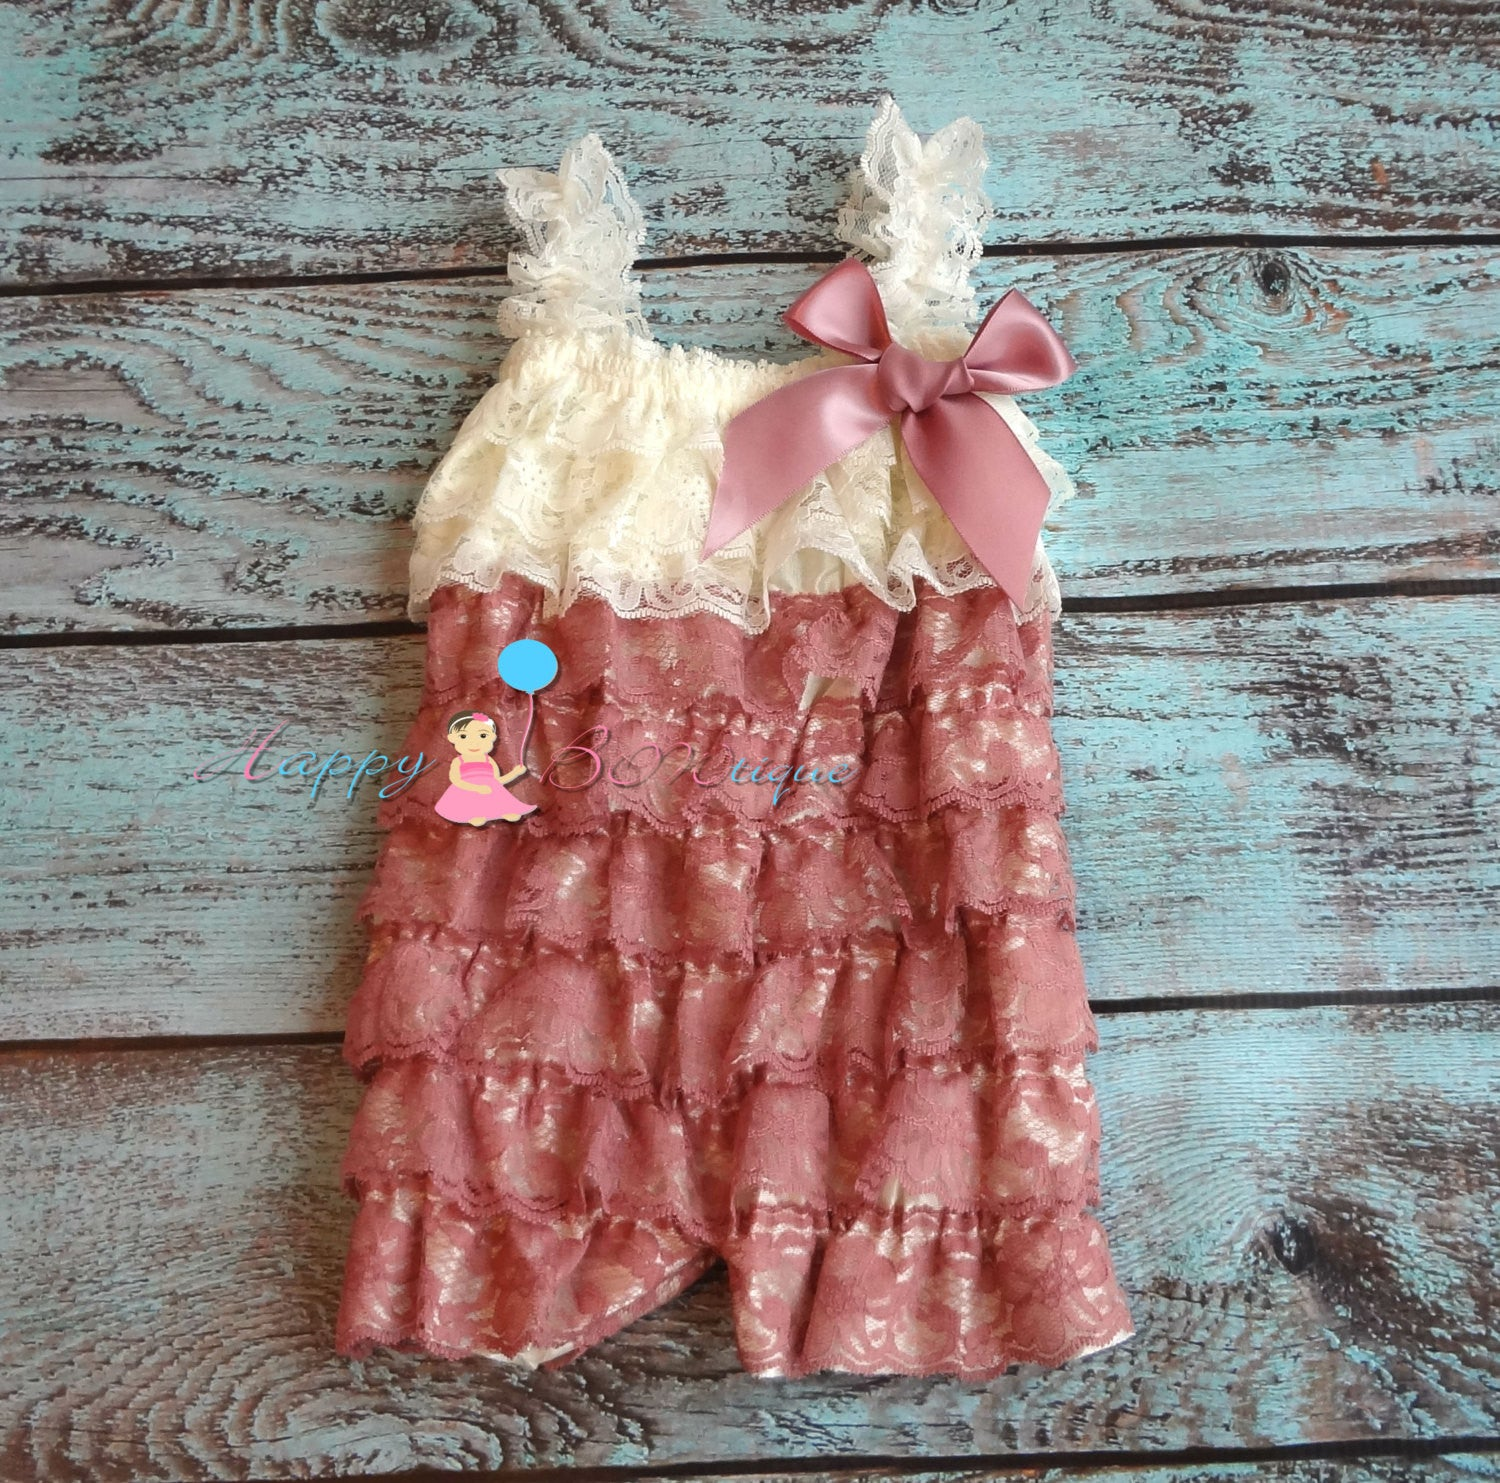 Dusty Ivory Rose Petti Lace Romper - Happy BOWtique - children's clothing, Baby Girl clothing